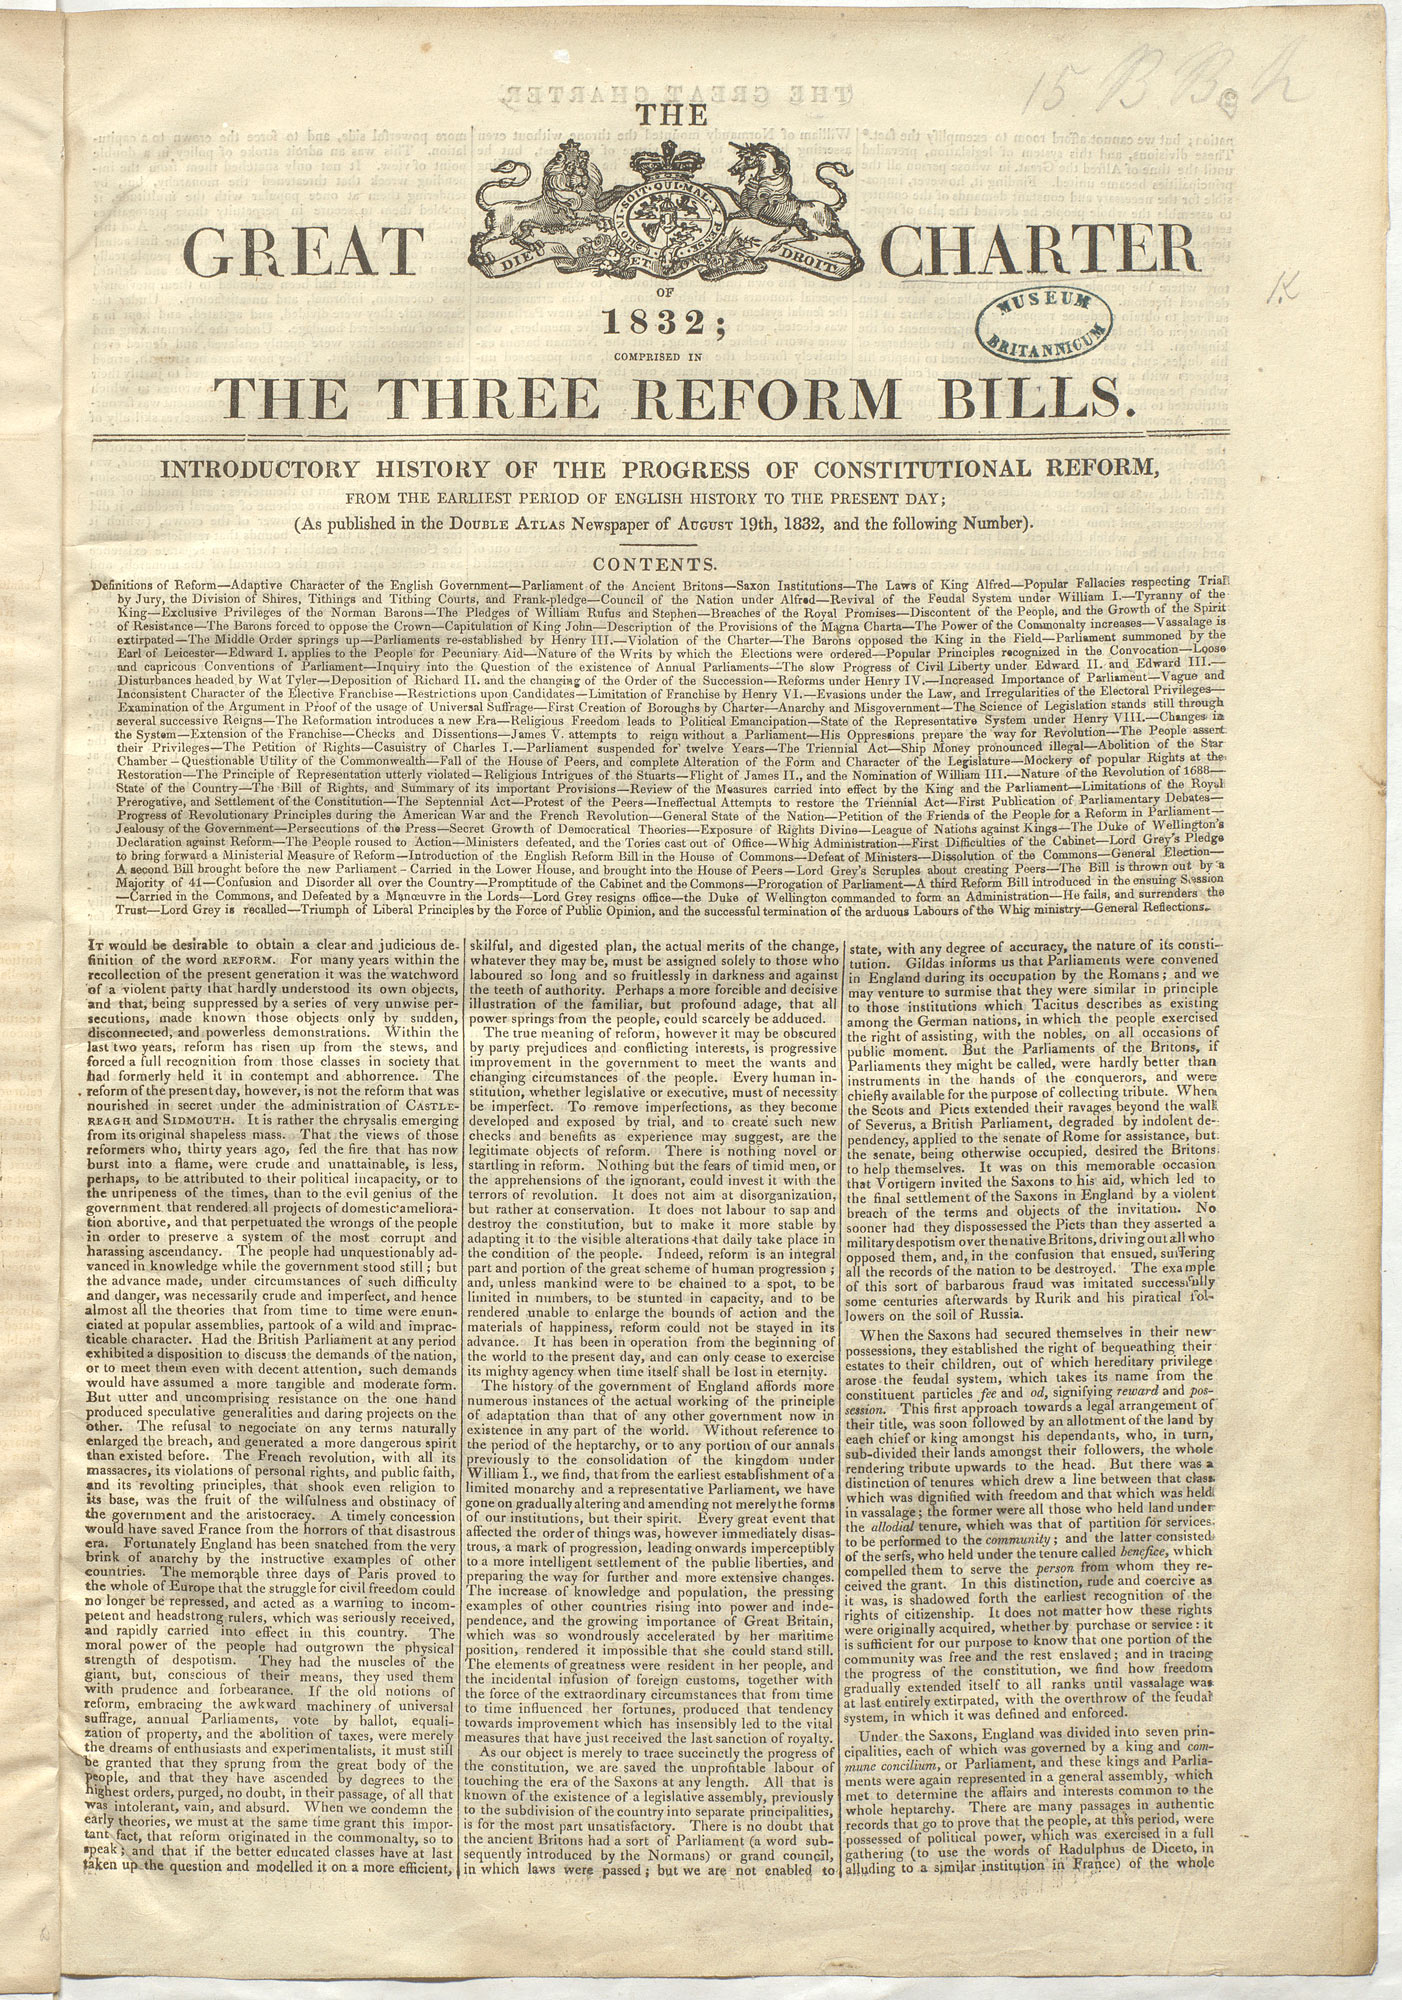 The Great Charter of 1832